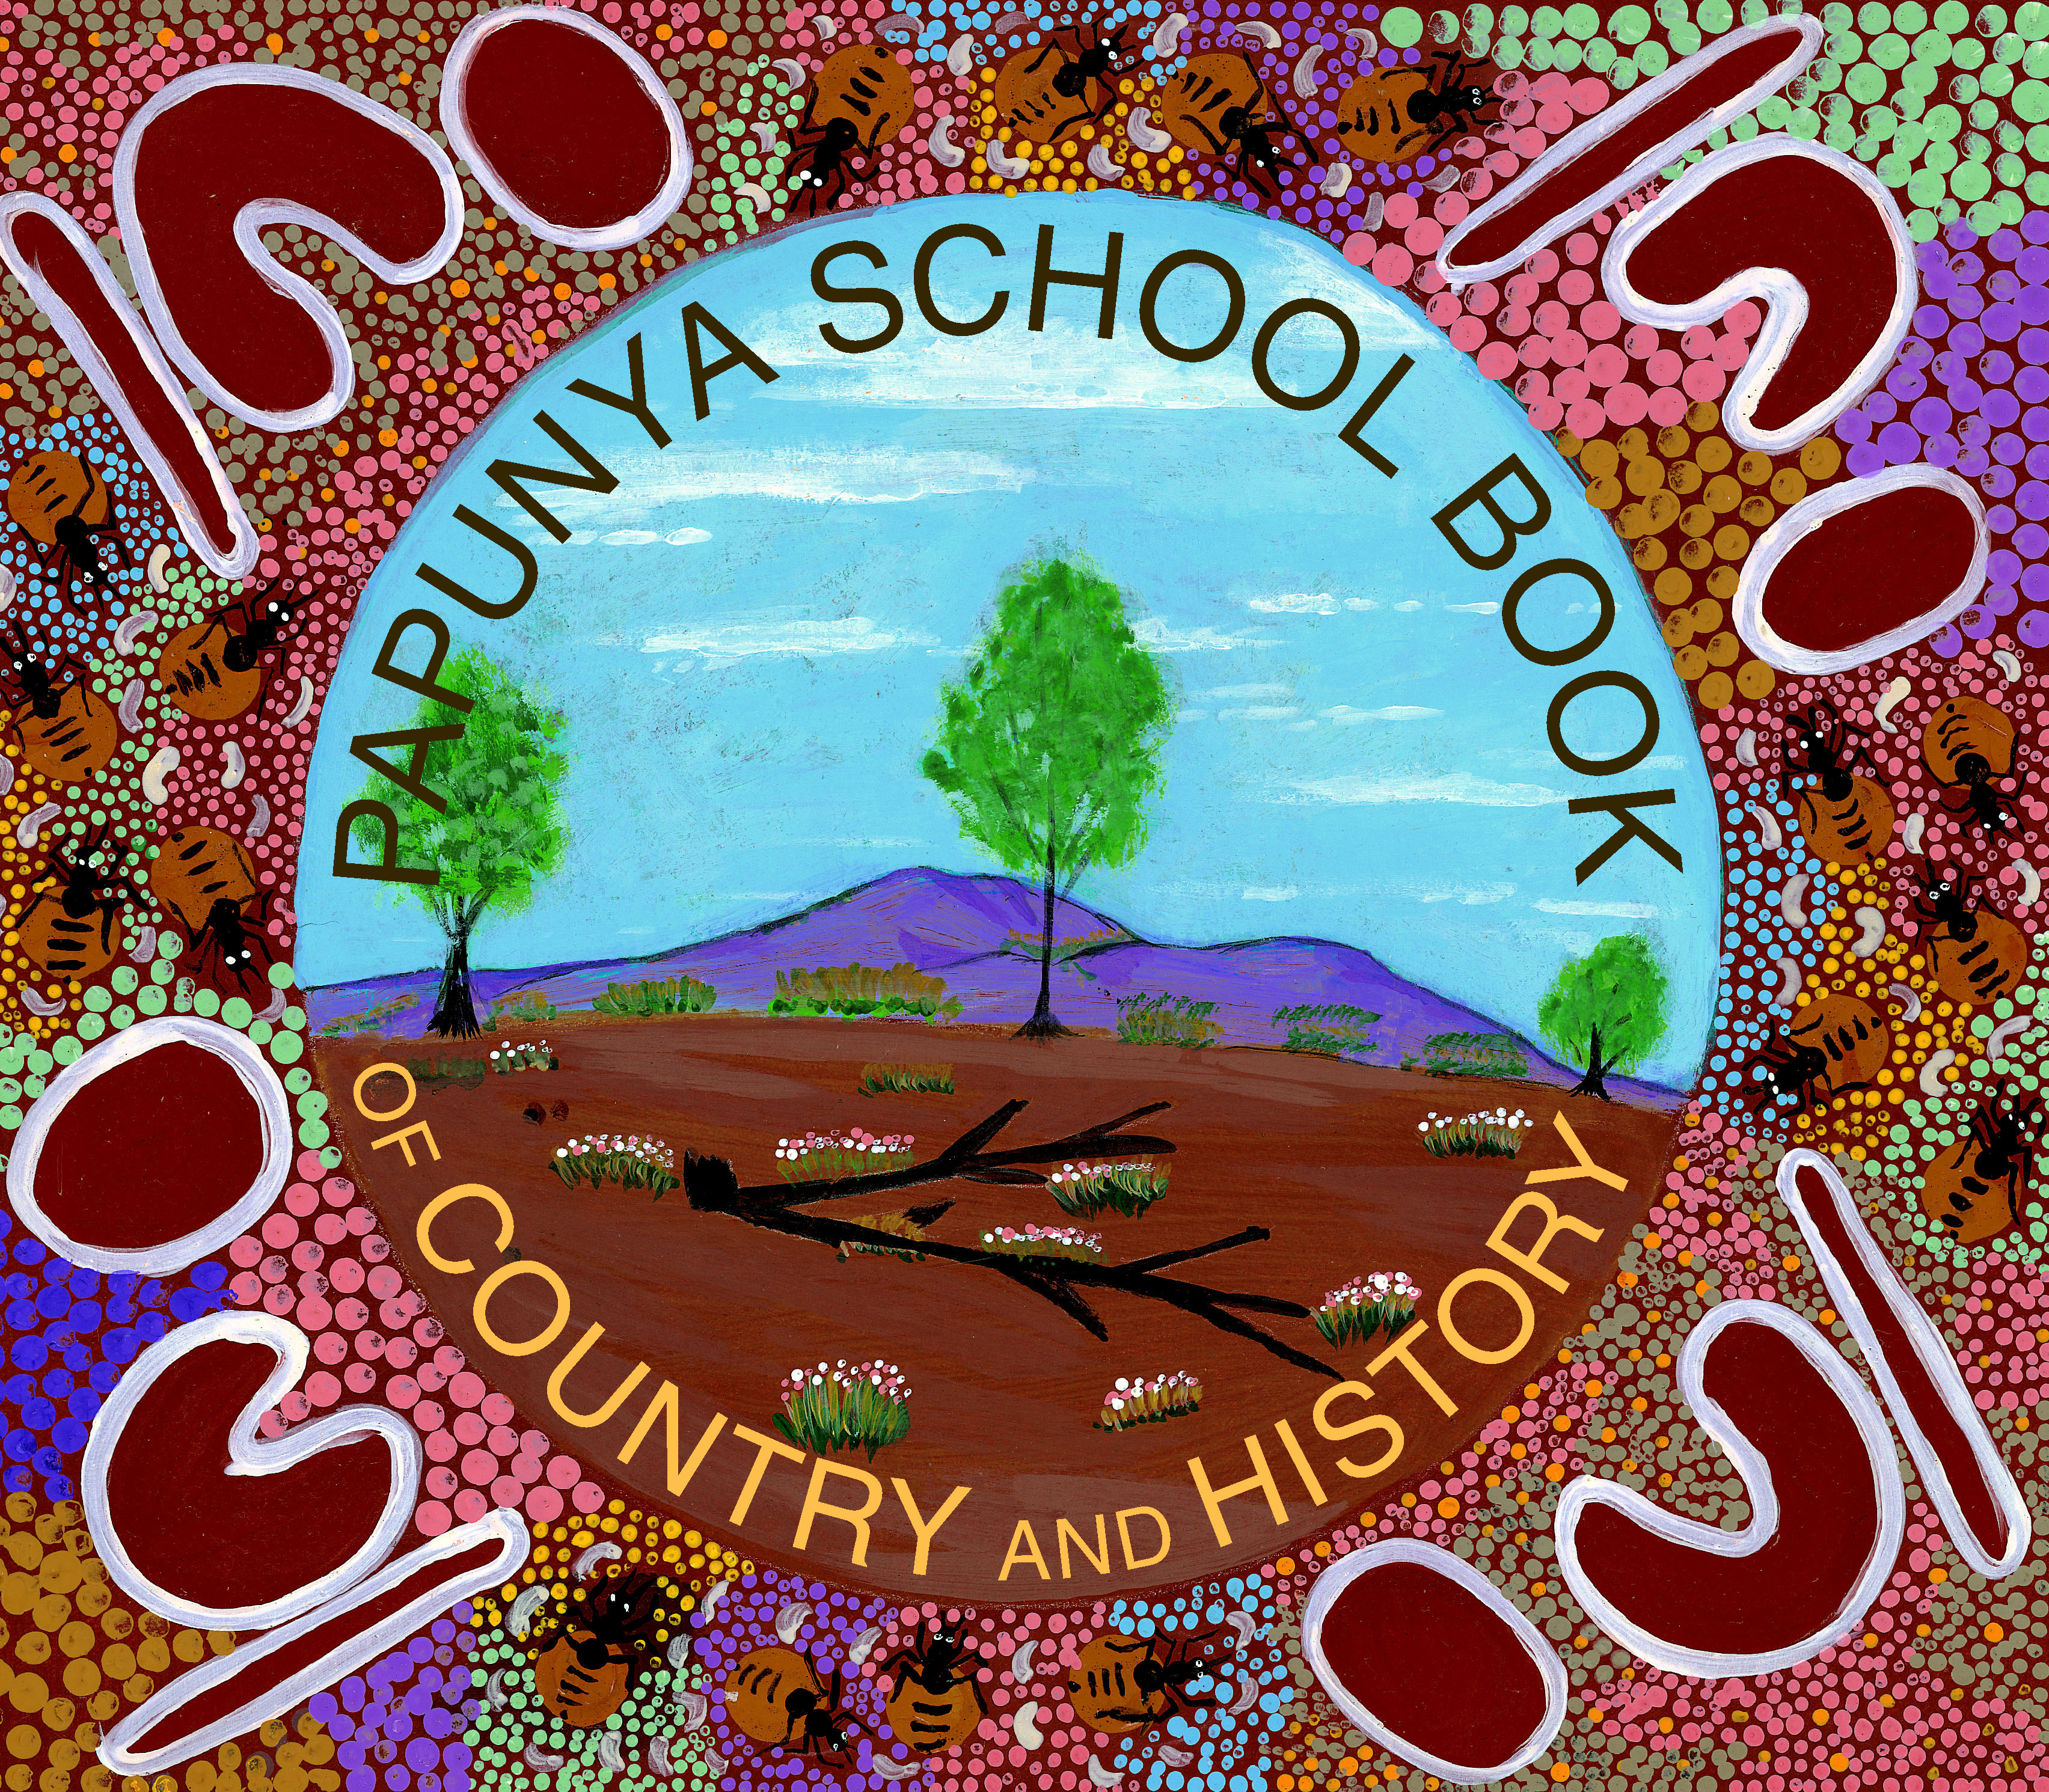 Book Covers For School Australia : Papunya school book of country and history